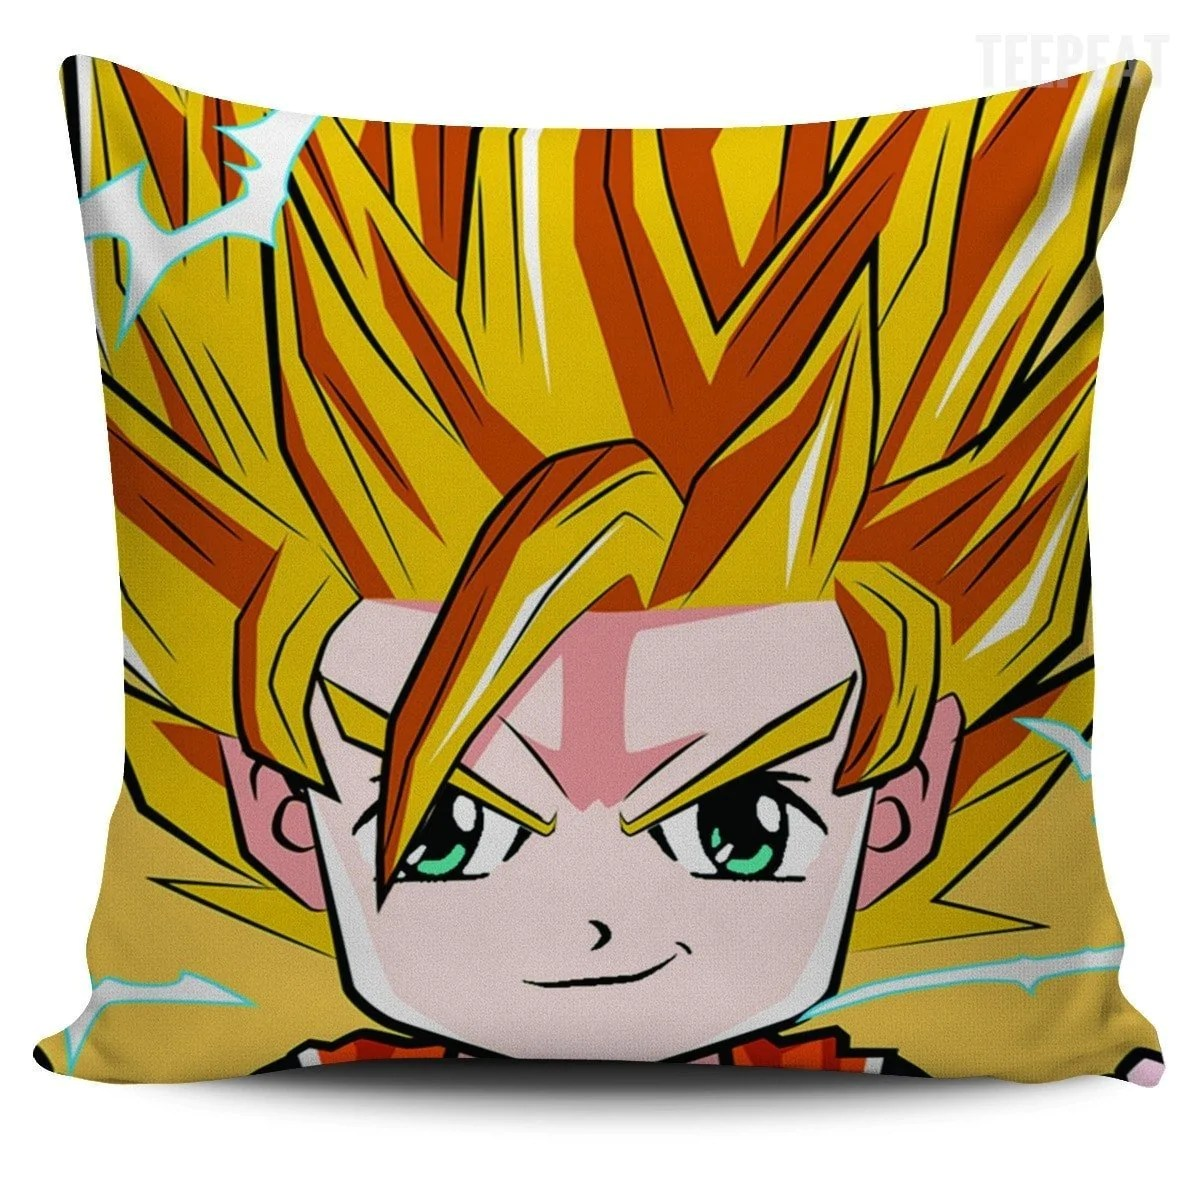 dragon ball z characters pillow case